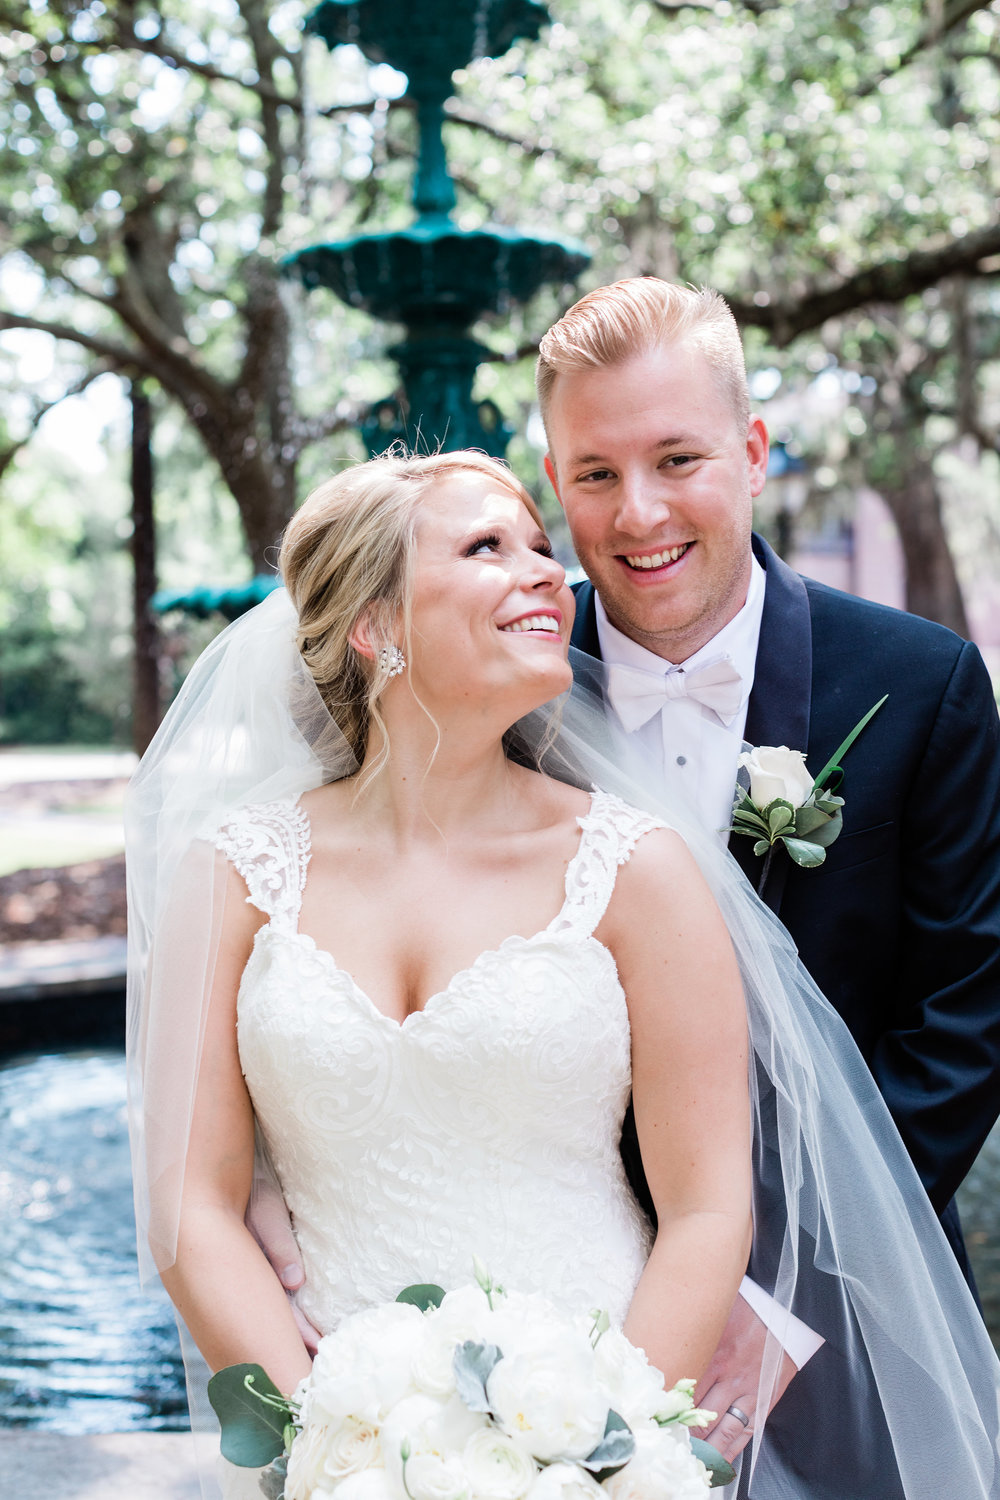 savannah-bridal-shop-i-and-b-bride-meghan-rosamund-gown-by-maggie-sottero-st-johns-cathedral-wedding-apt-b-photography-12.JPG